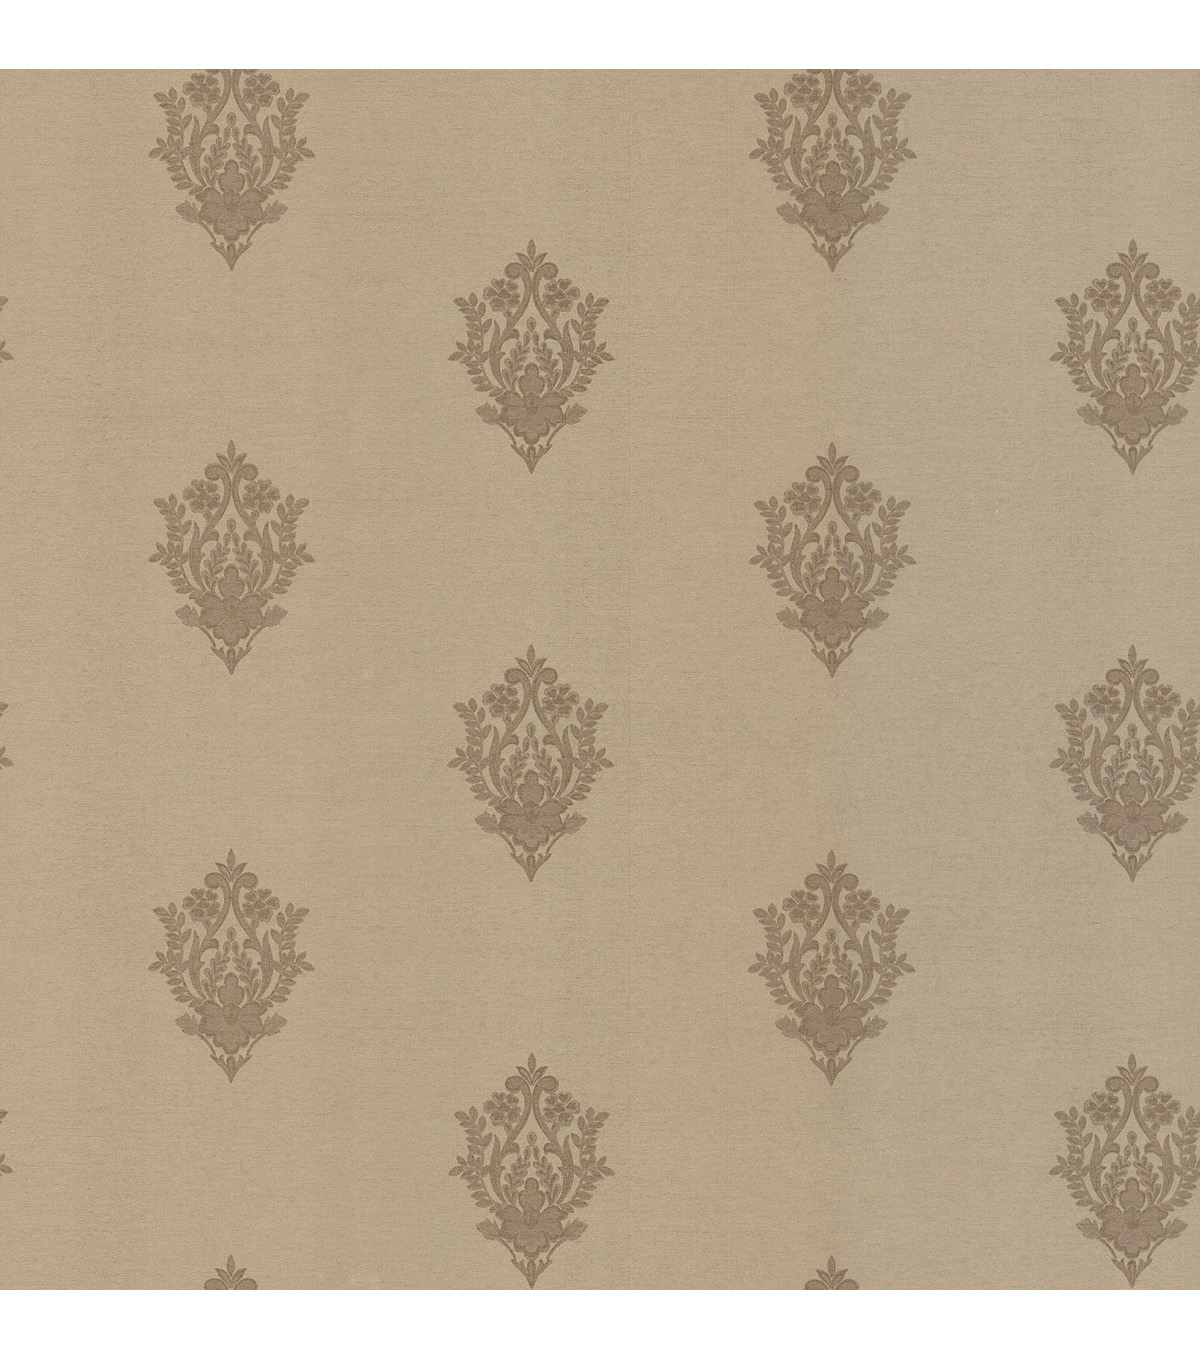 Tatiana Gold Damask Wallpaper Sample